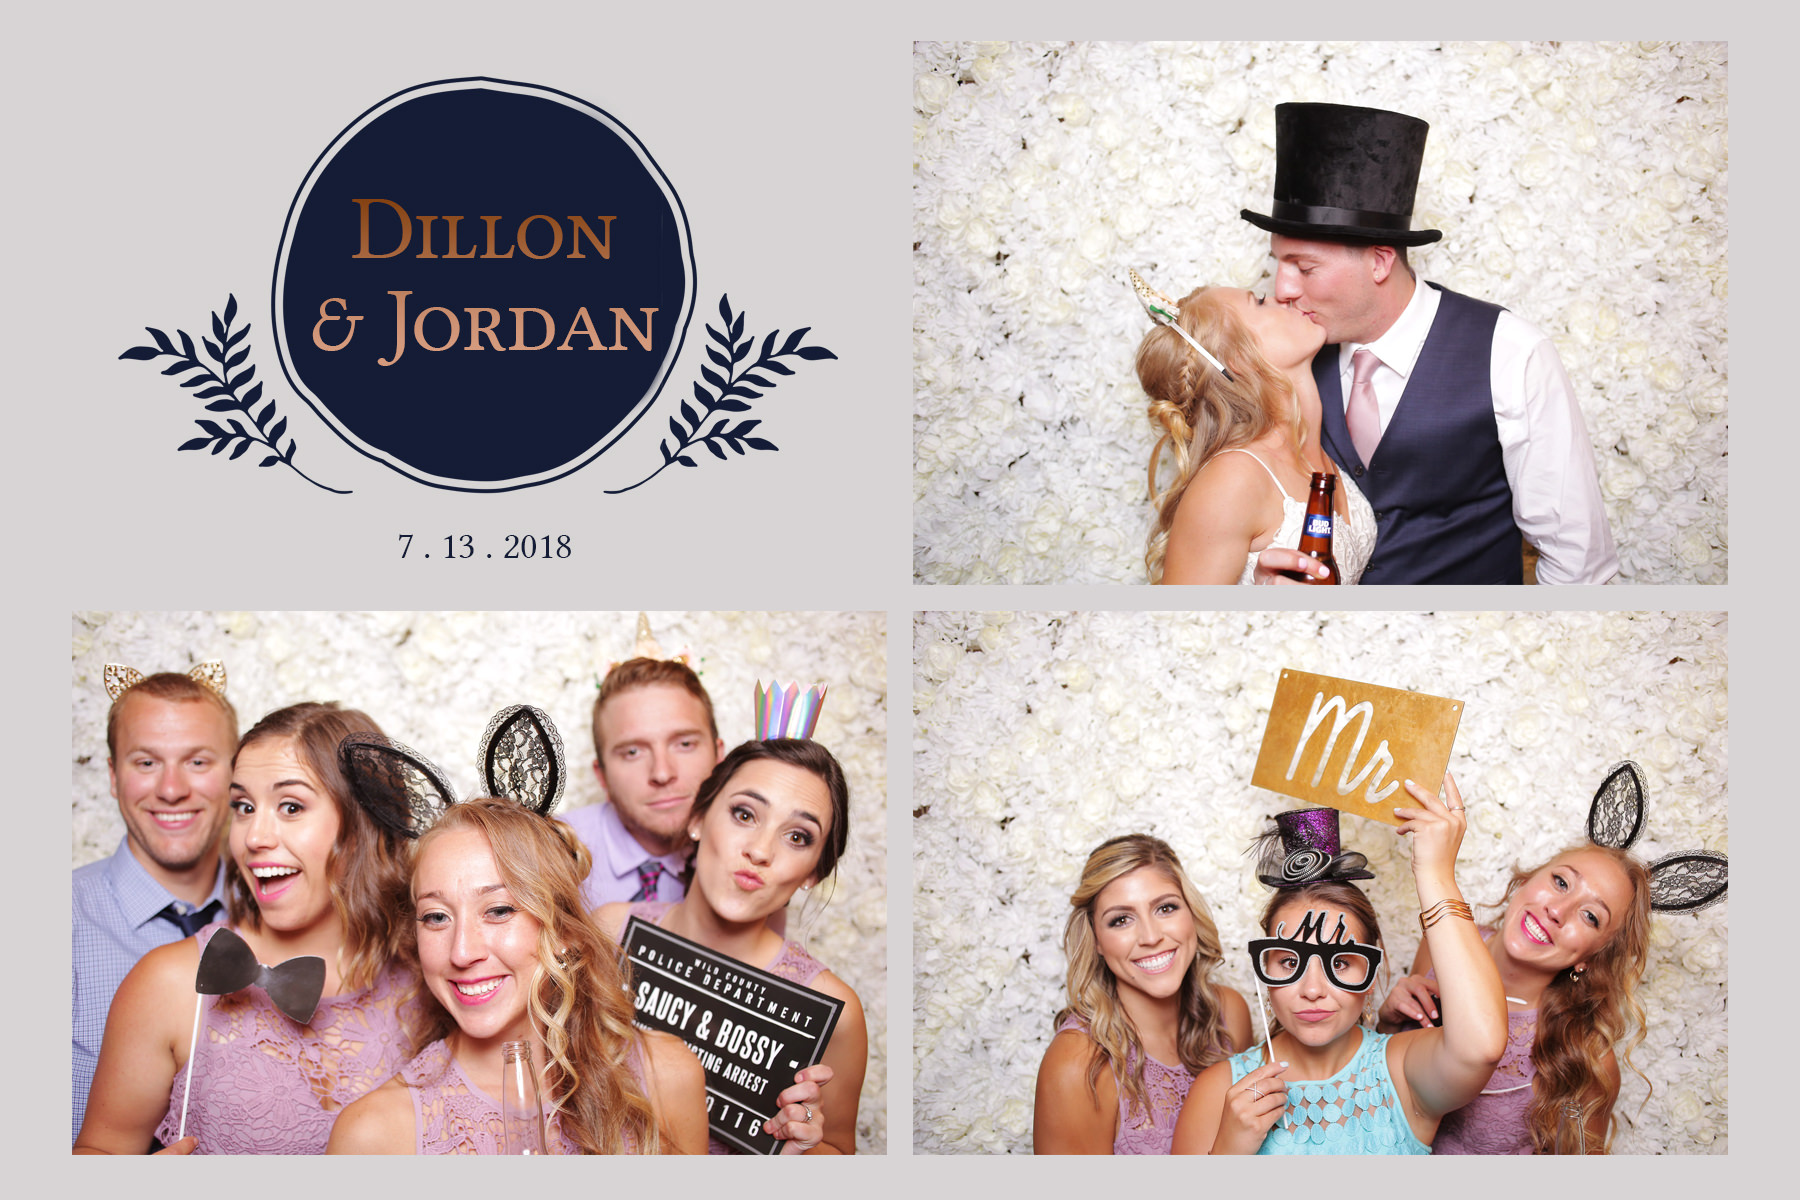 Photobooth Wedding Rental Jordan White Dillon Lawrence Barn at Racoon Creek Littleton Colorado Liz Osban photography photo booth weddings booth instant silver sequin backdrop.jpg